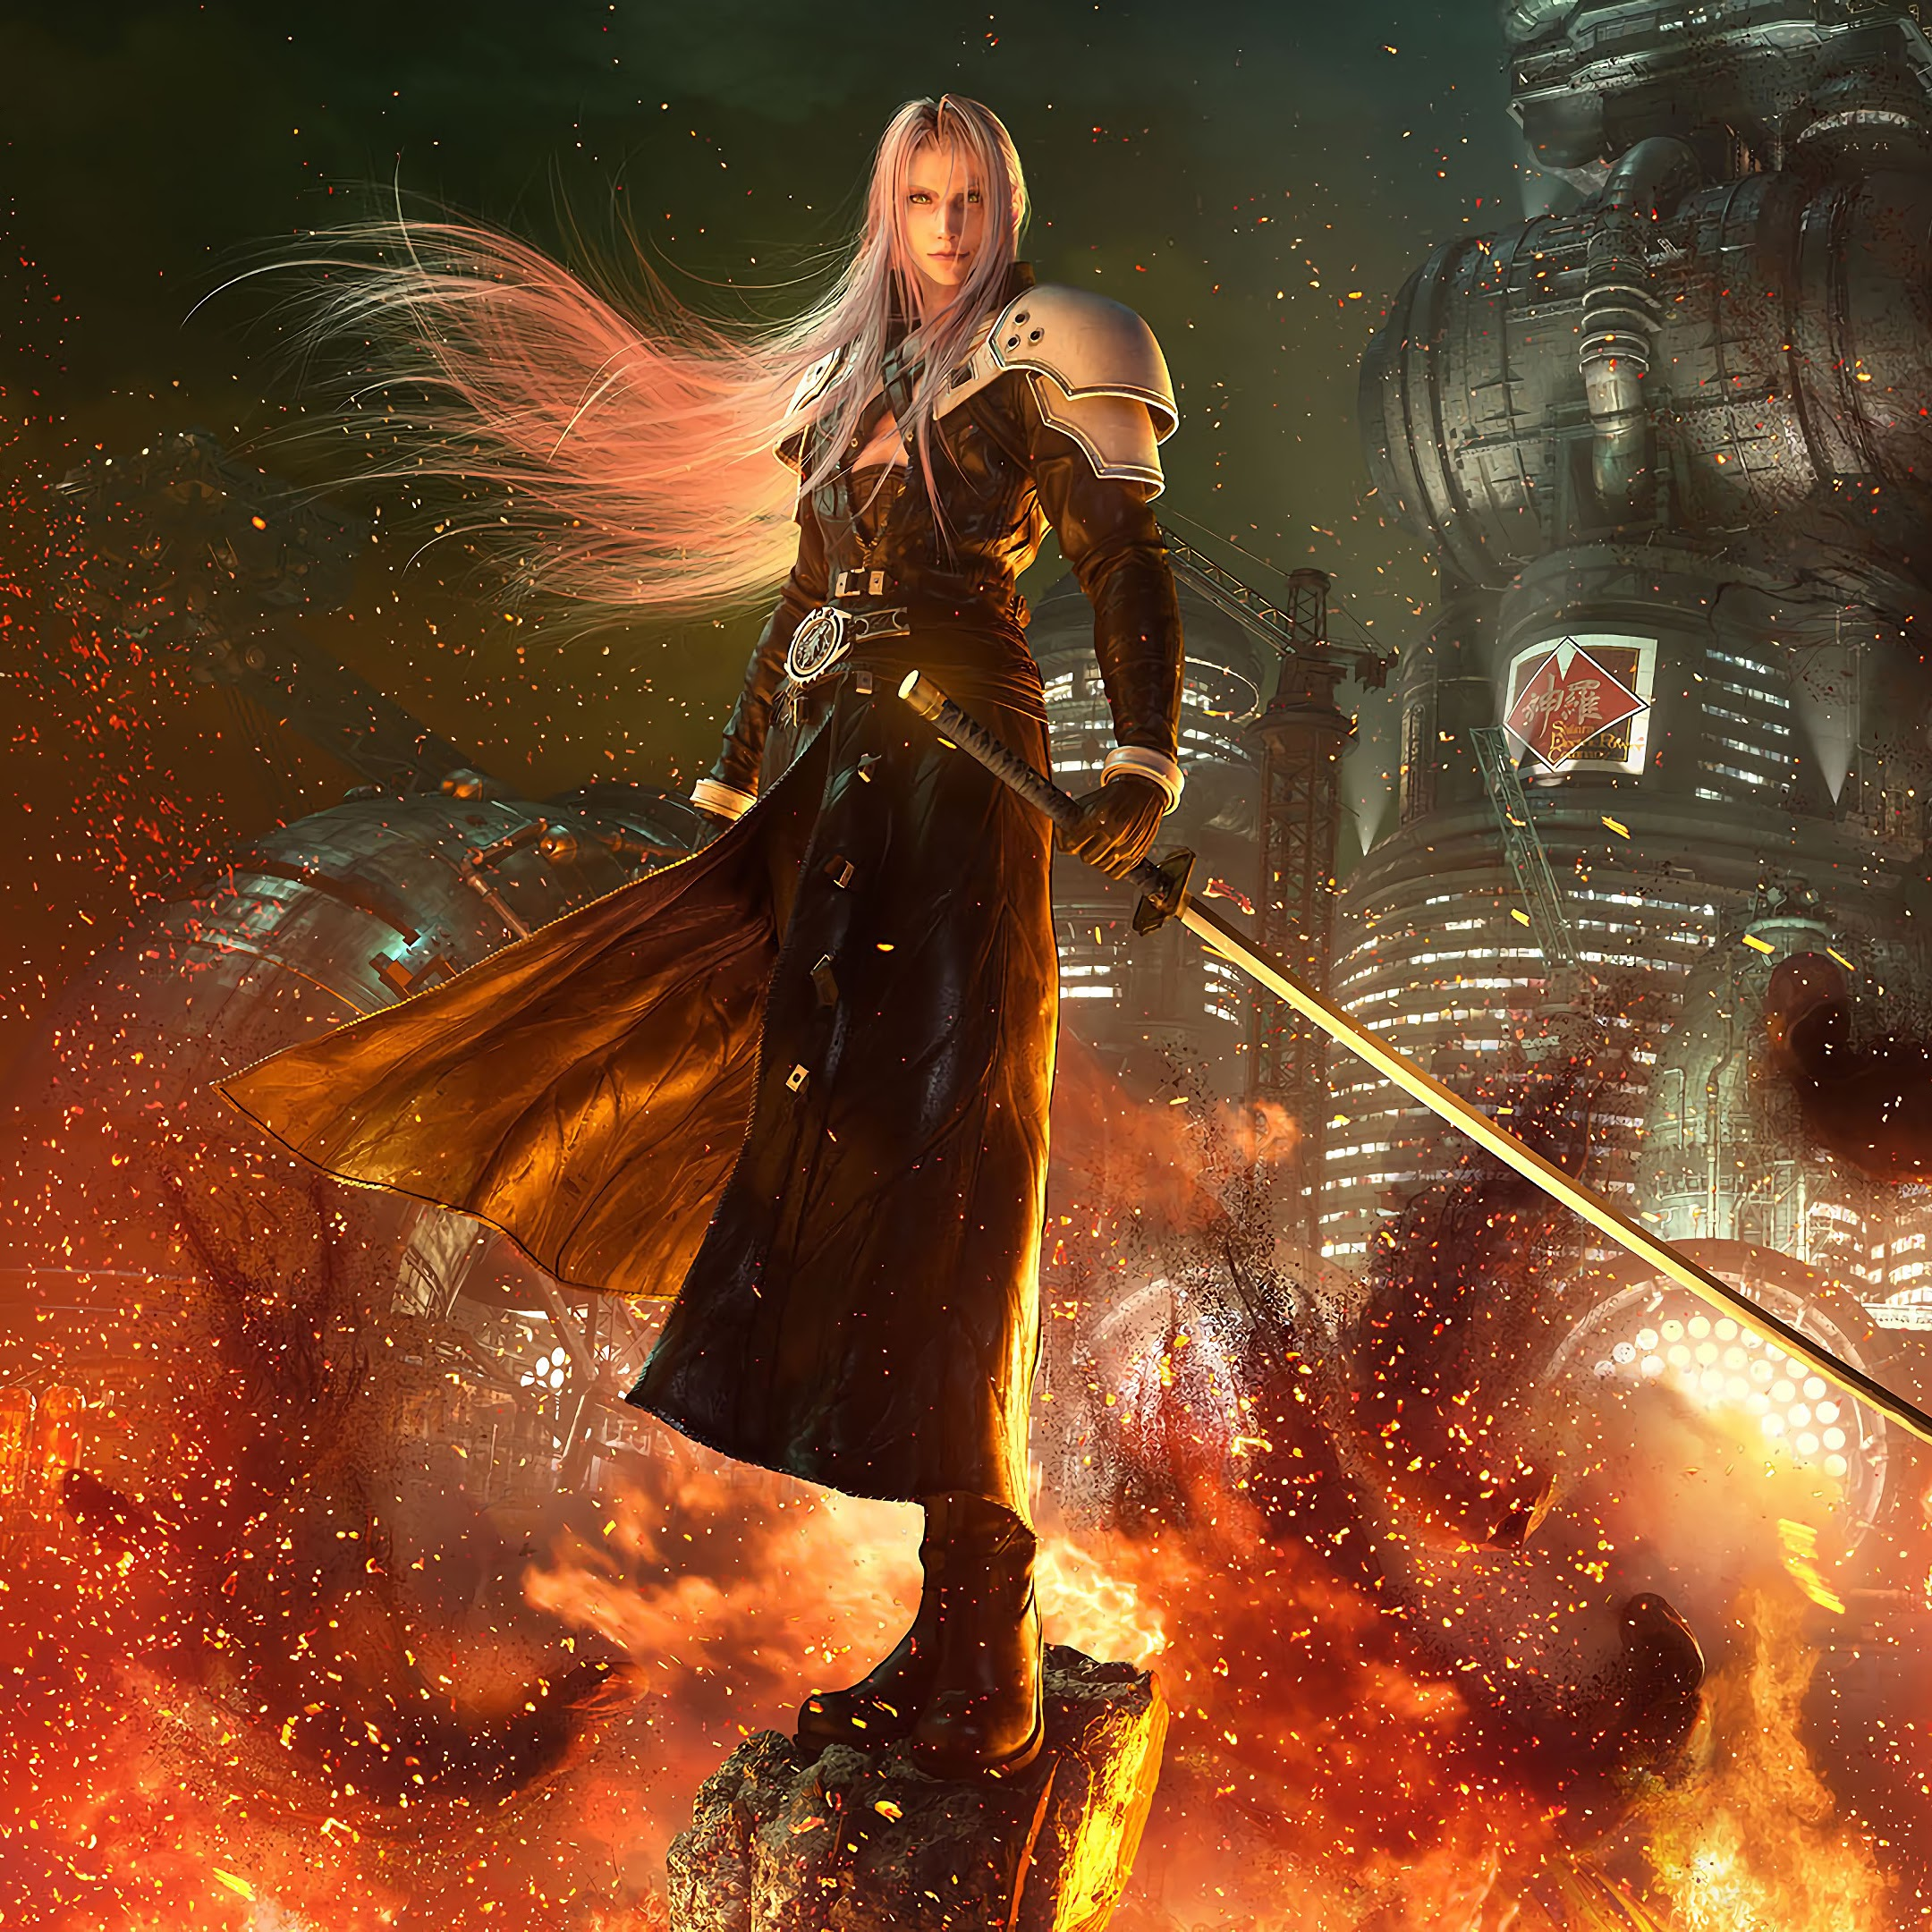 Sephiroth, Final Fantasy 7 Remake, 4K, #29 Wallpaper